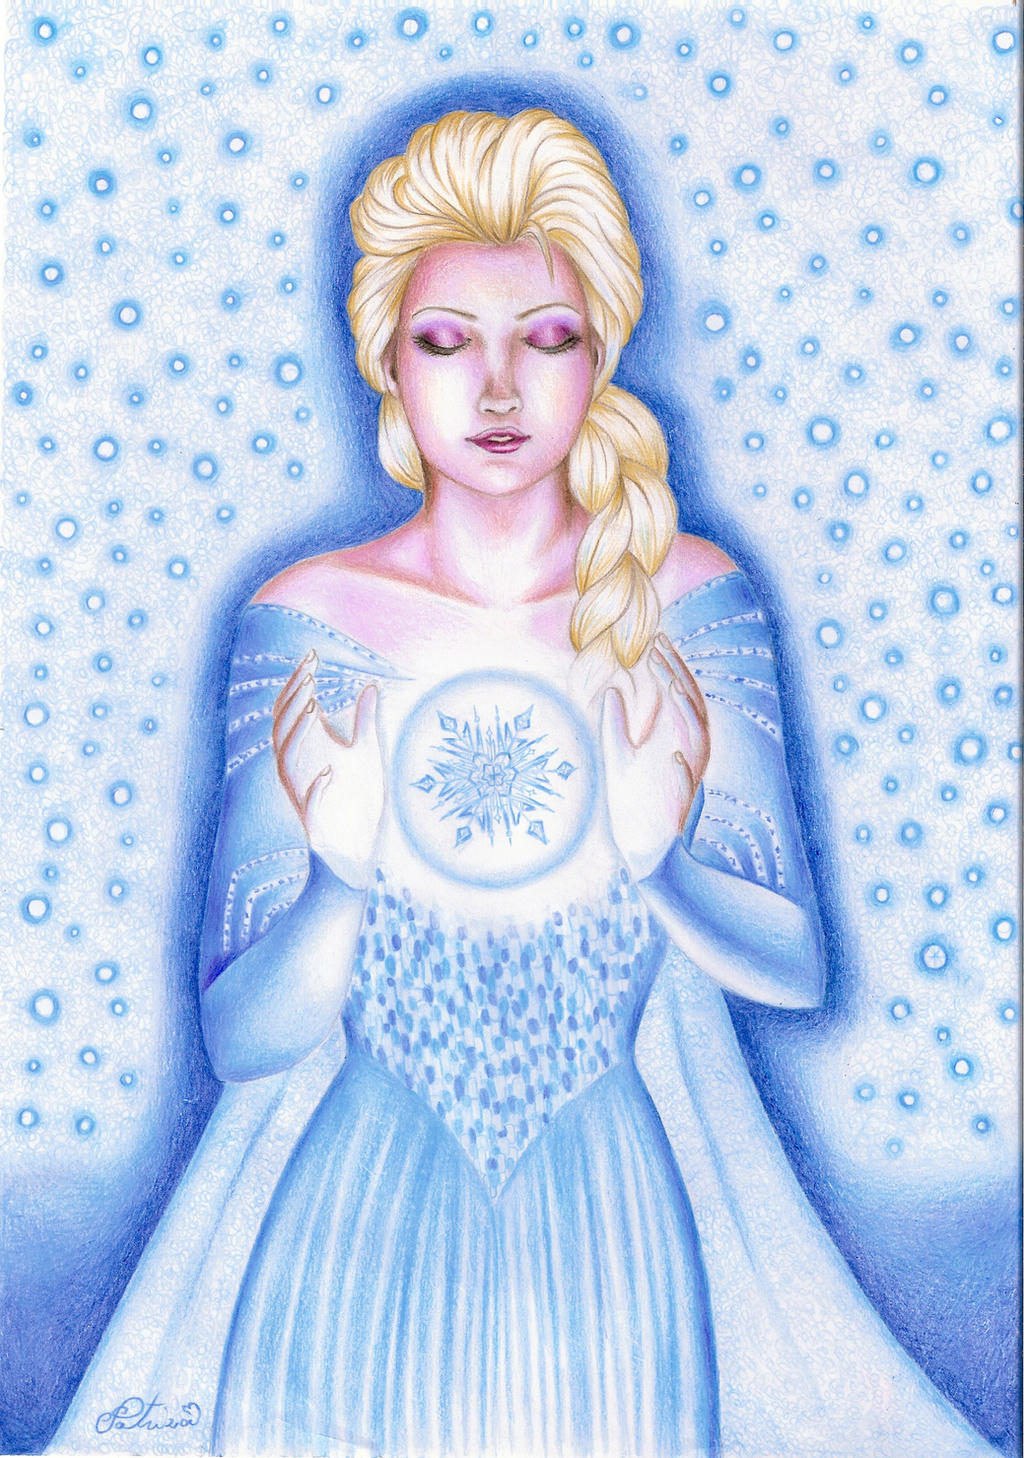 The snow queen 2 by DreamyNaria